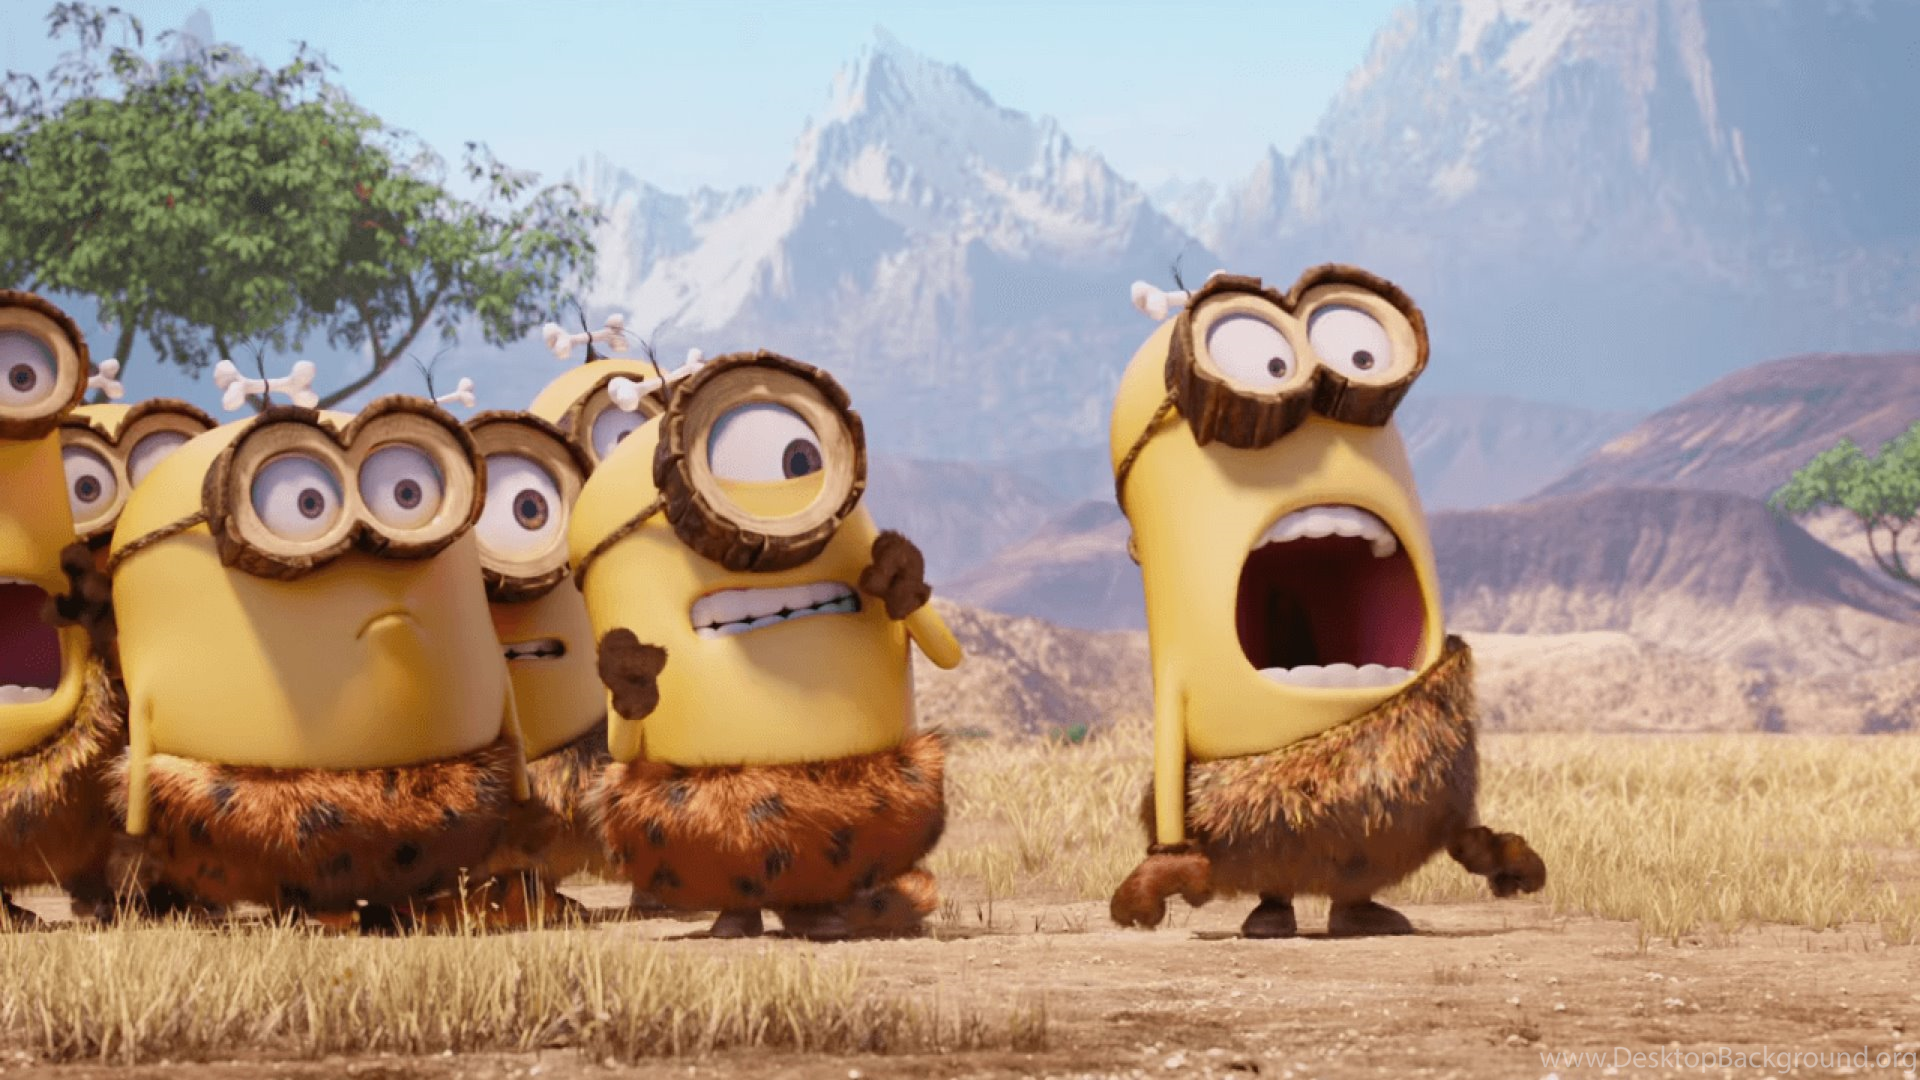 cavemen minions 1920x1080 (1080p) wallpapers minions wallpapers